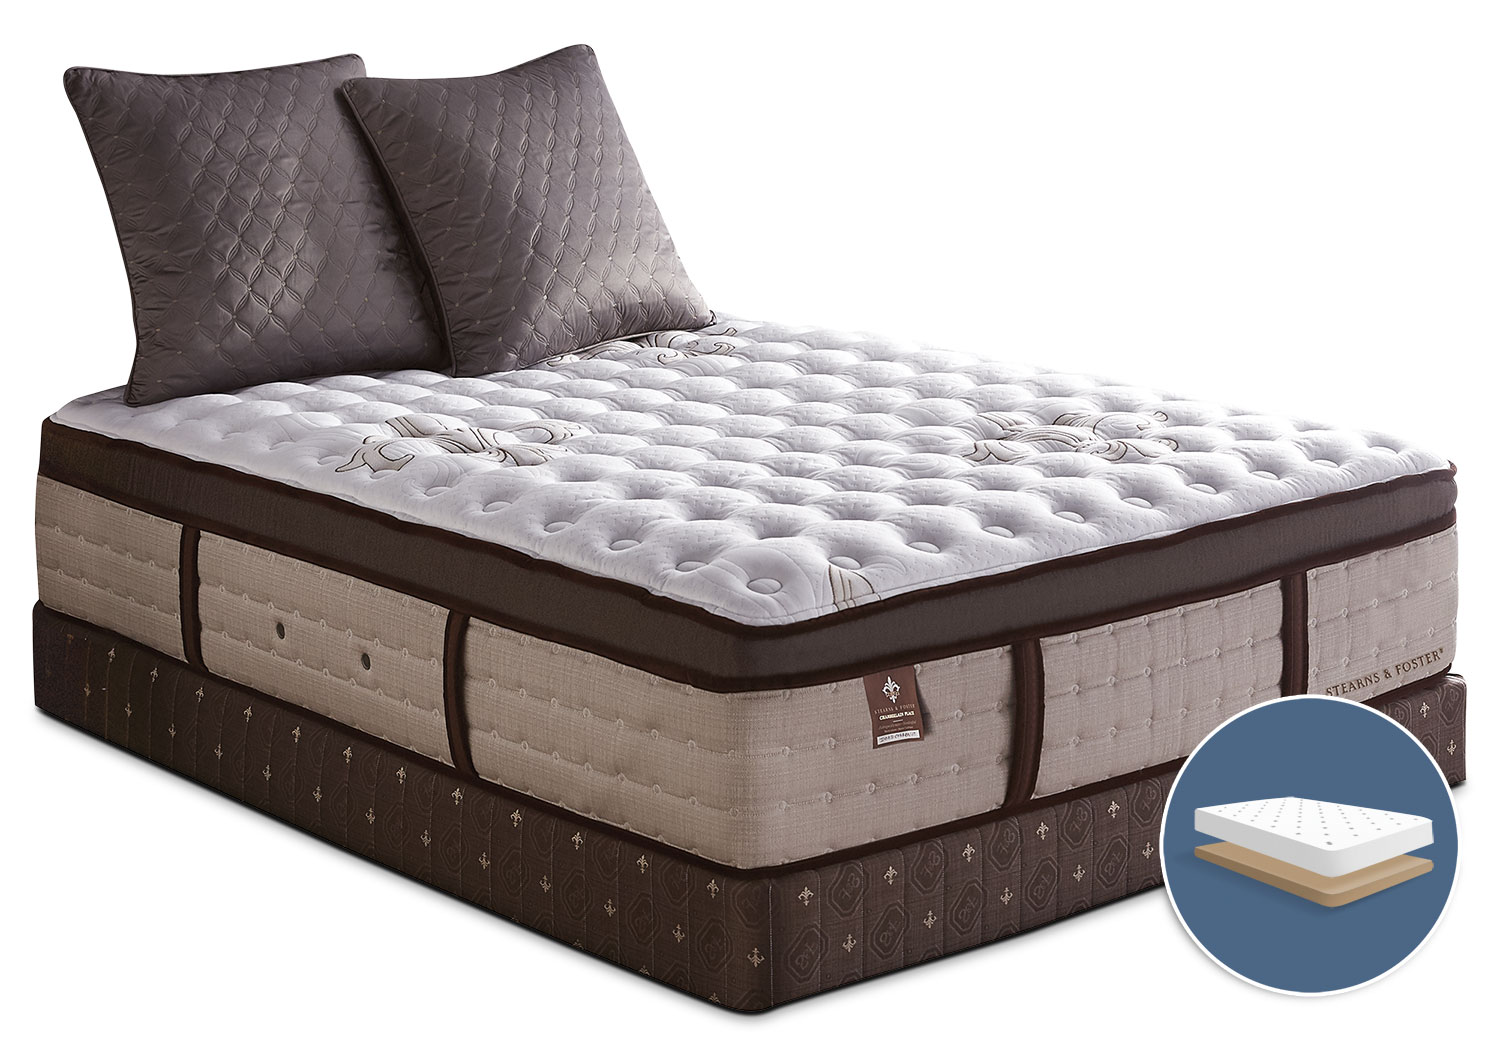 Mattresses and Bedding - Stearns & Foster Chamberlain Place Euro-Top Plush Low-Profile King Mattress Set